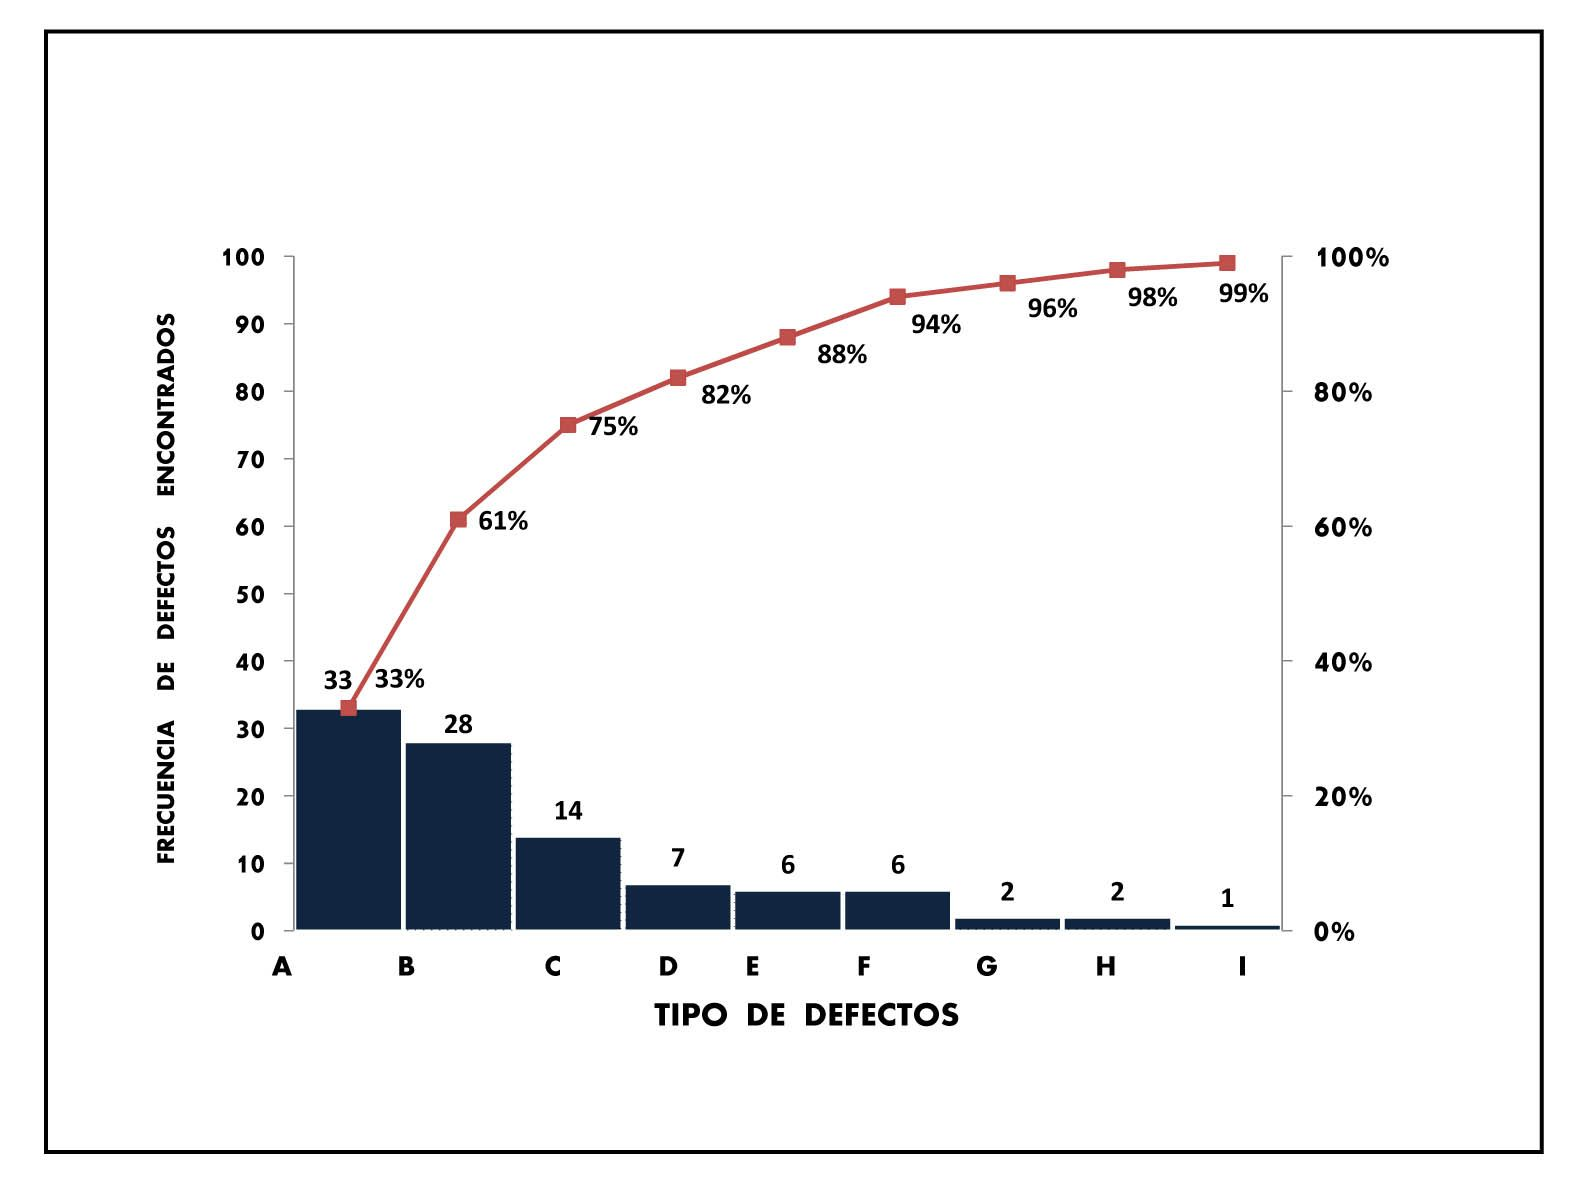 Diagrama de pareto hseq pinterest diagrama de pareto ccuart Image collections